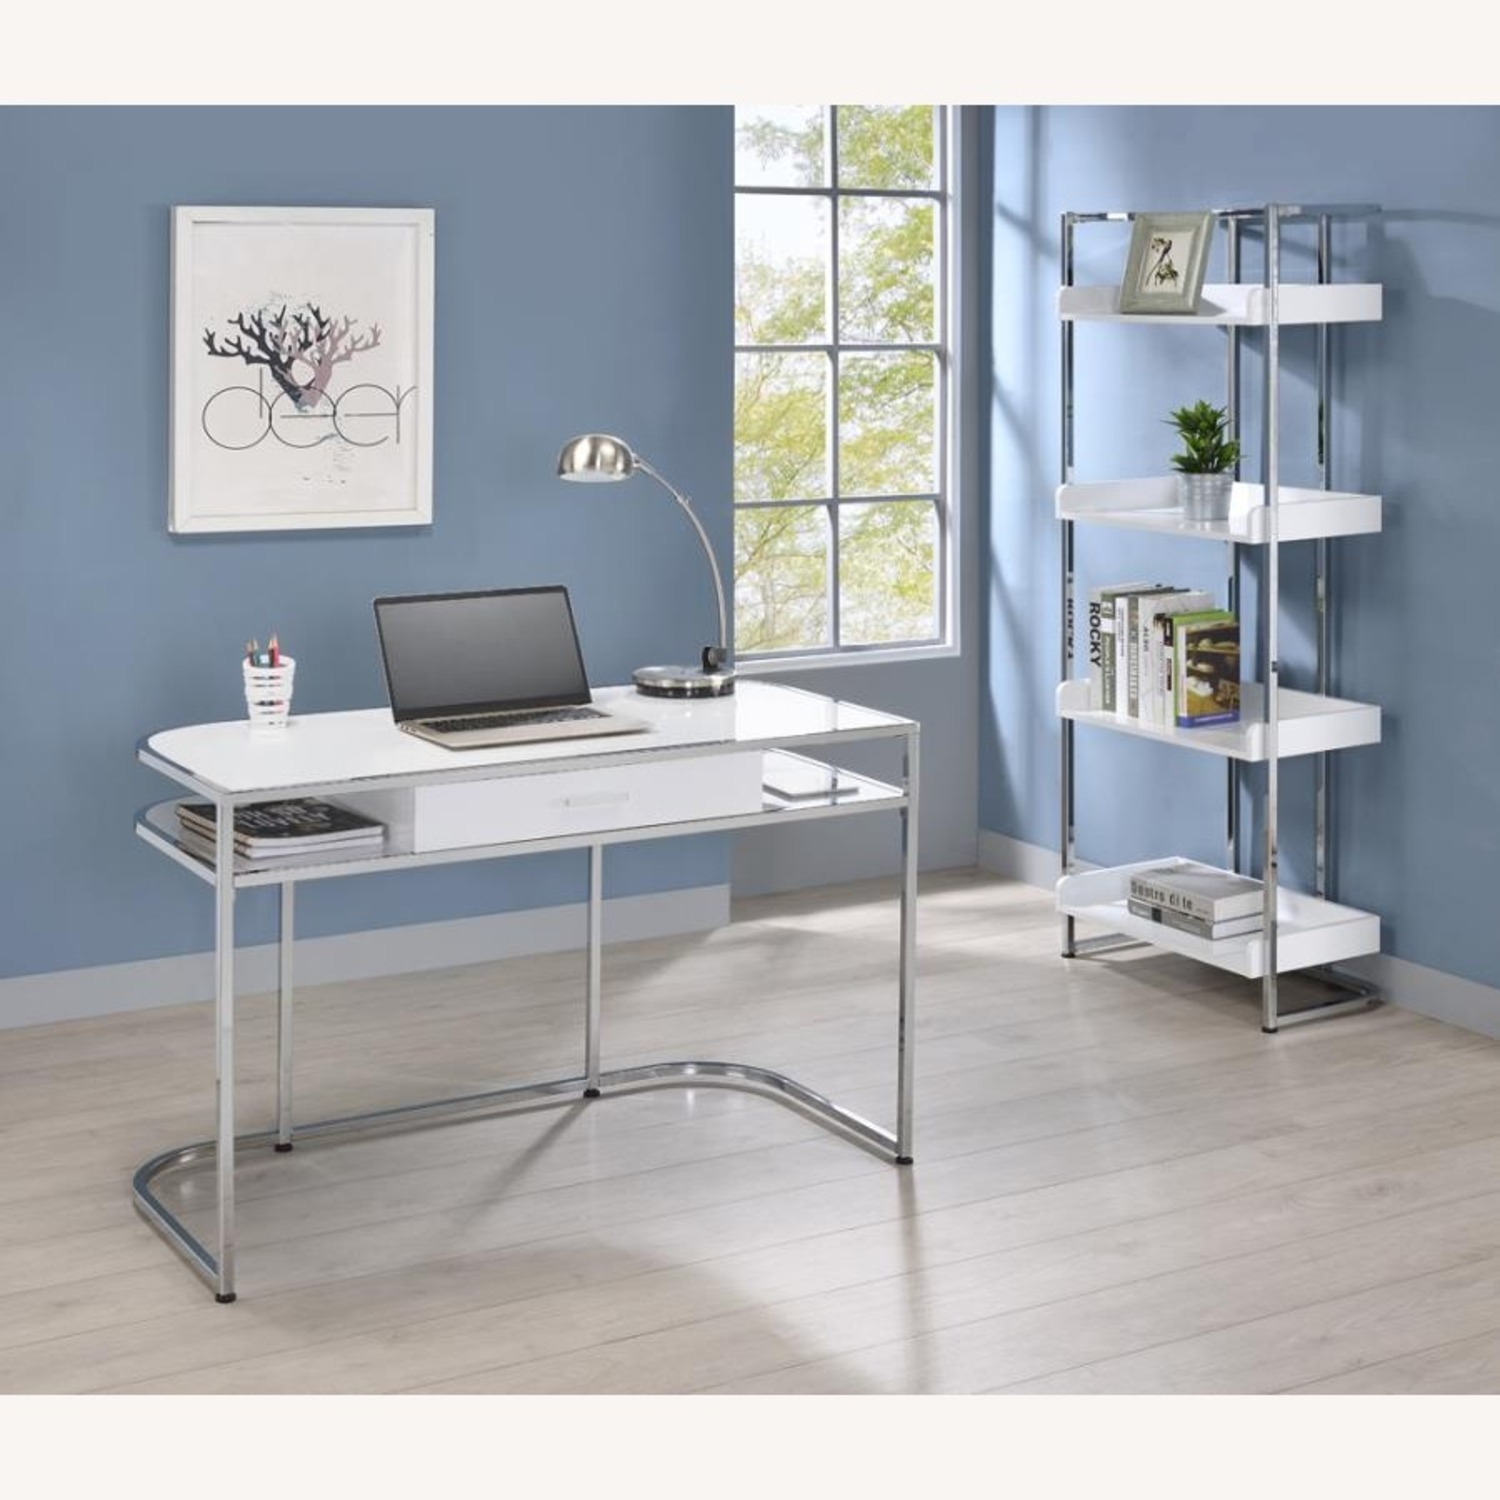 Writing Desk In White High Gloss Lacquer Finish - image-10